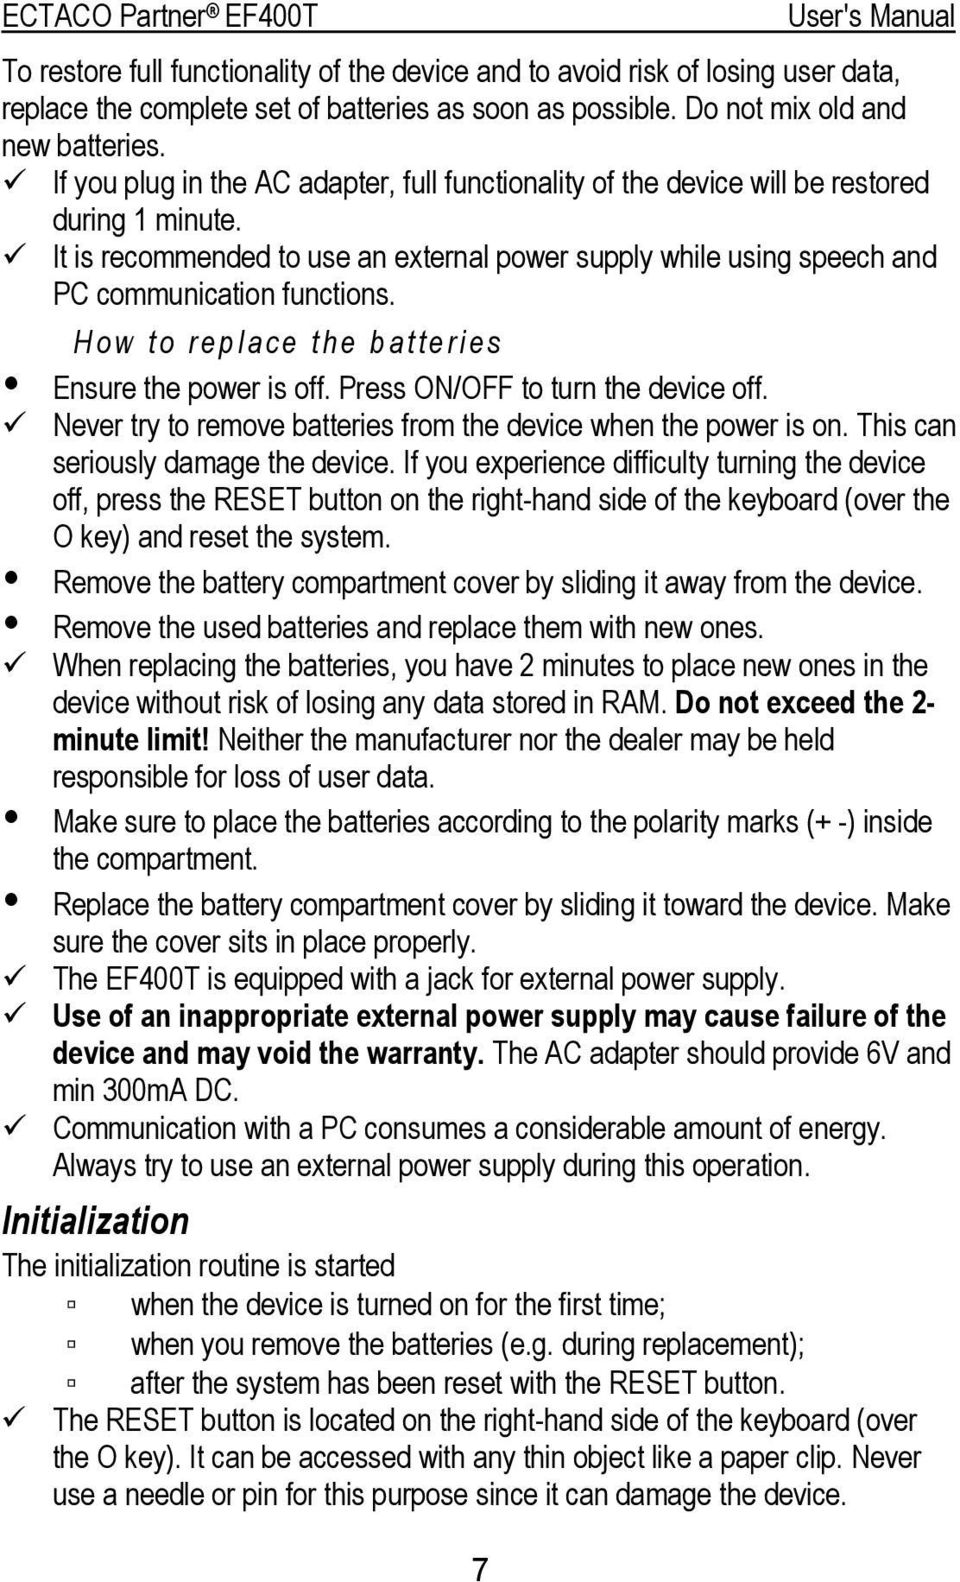 How to replace the batteries Ensure the power is off. Press ON/OFF to turn the device off. Never try to remove batteries from the device when the power is on. This can seriously damage the device.